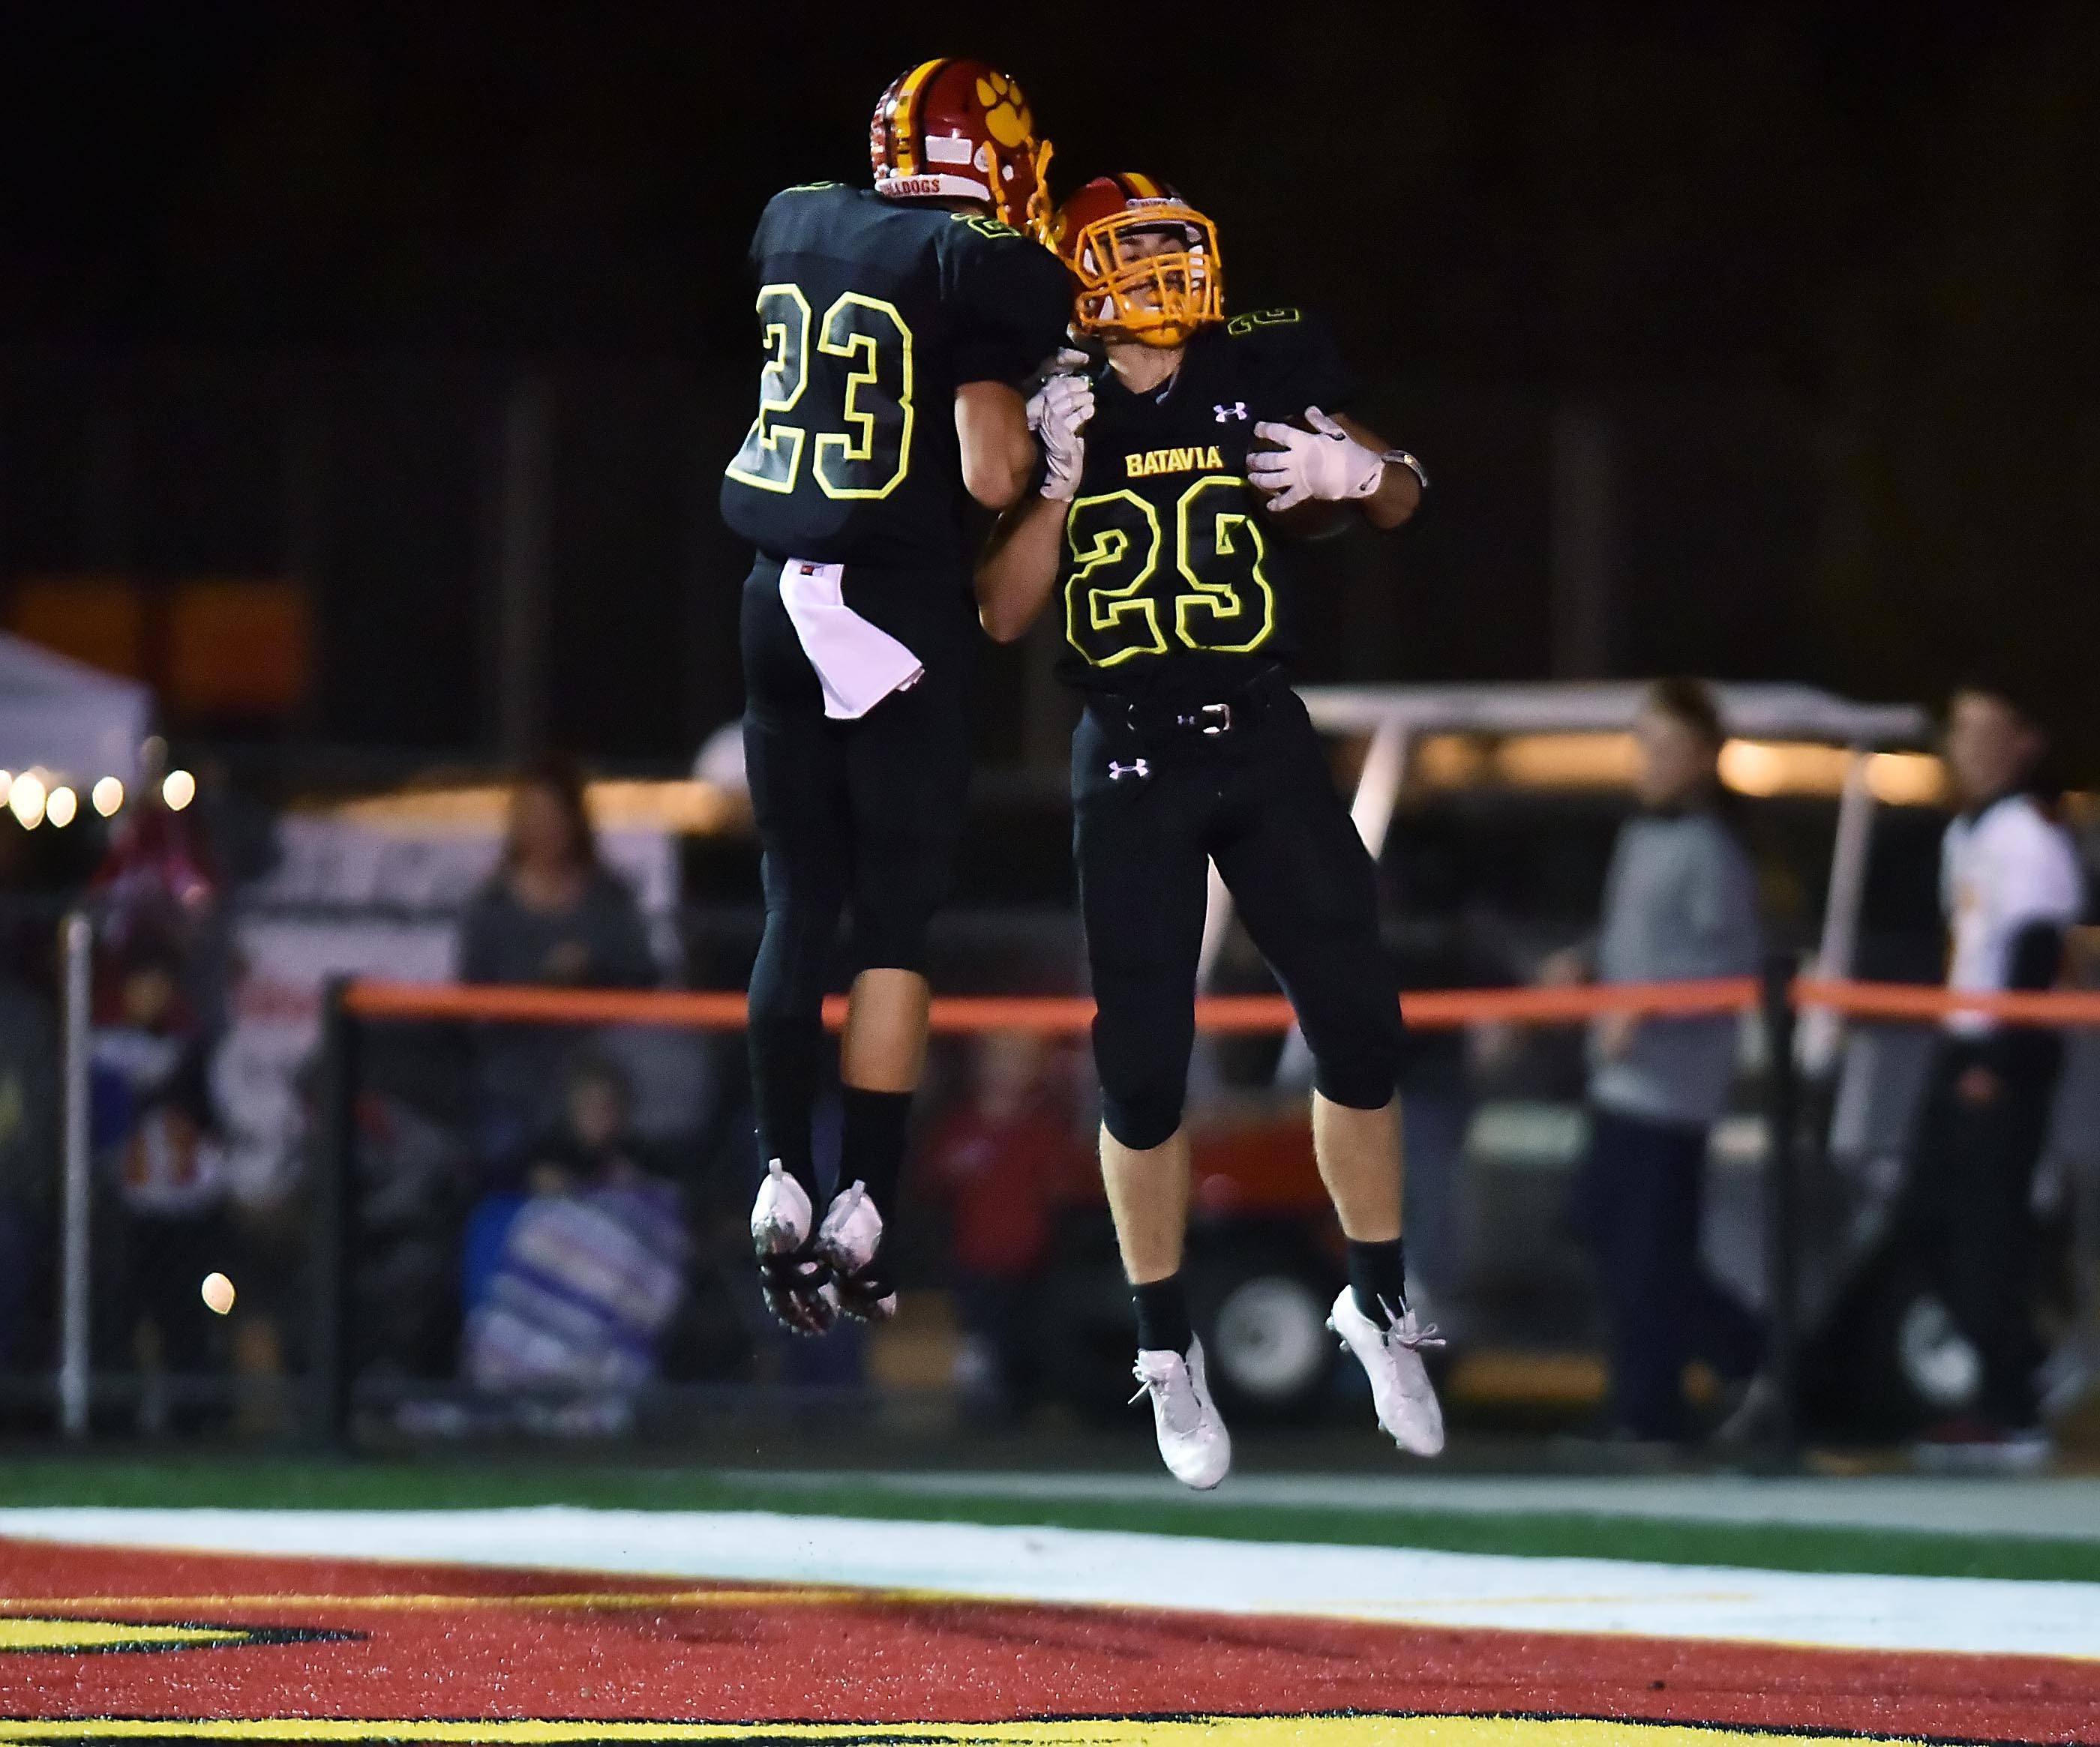 Batavia's Matthew Huizinga and teammate Thomas Stuttle celebrate Huizinga's first quarter touchdown run against Geneva at Batavia Friday night.